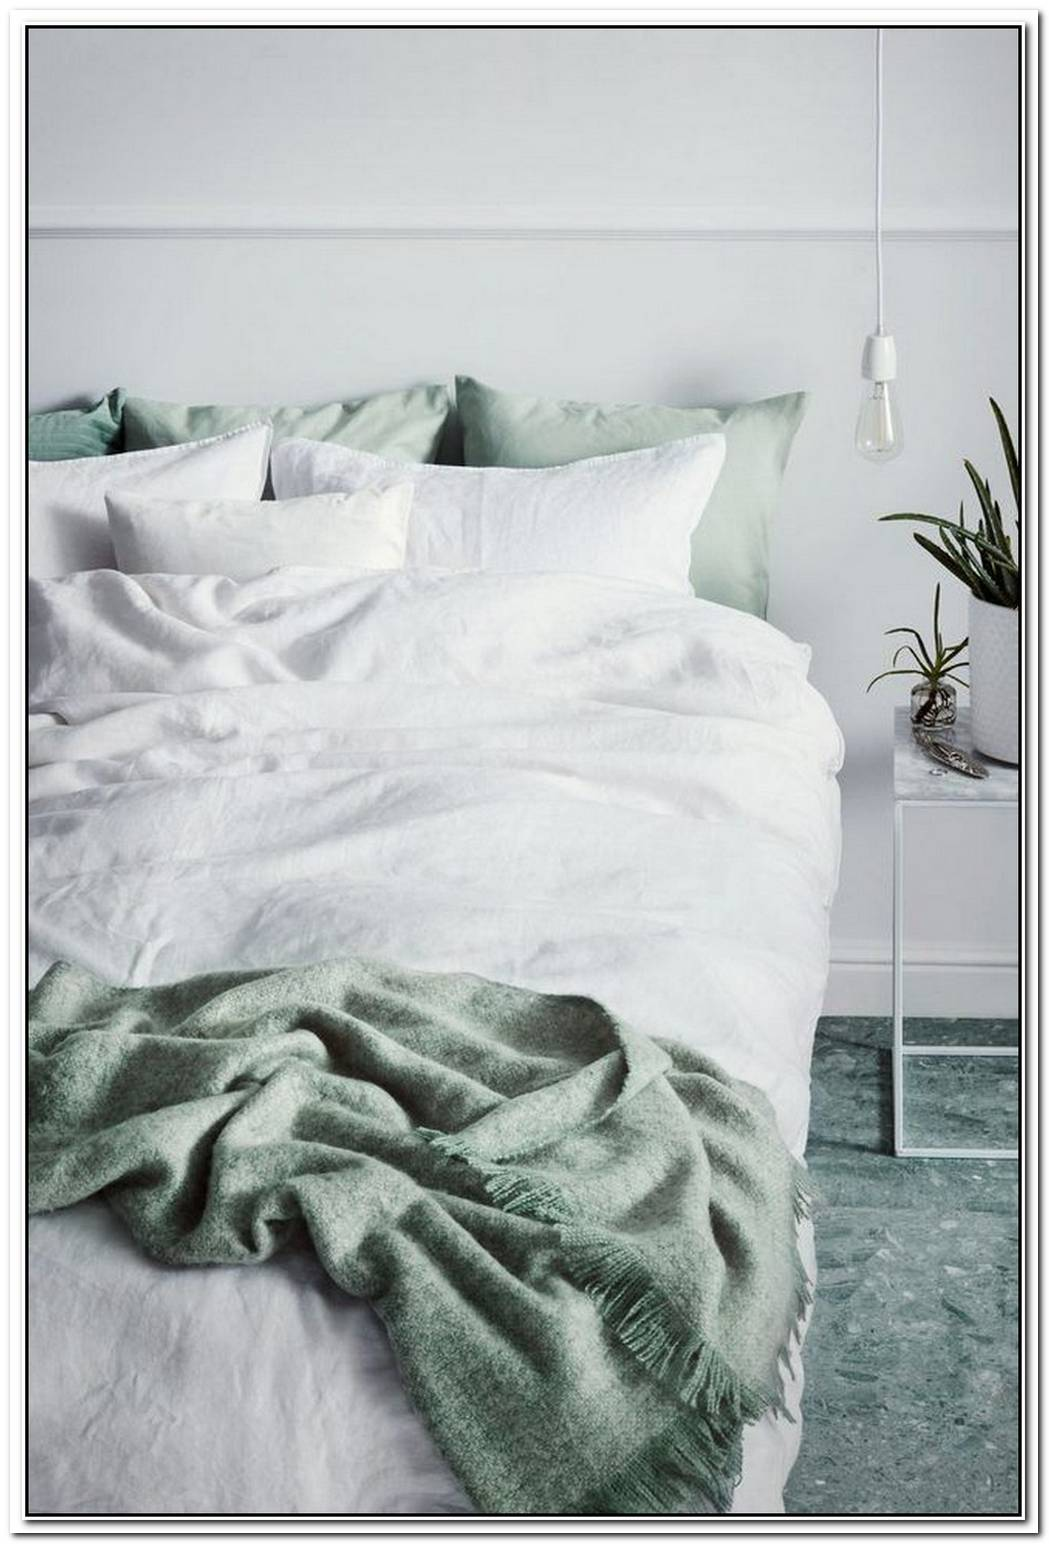 Linen Bedding Is Having A Moment